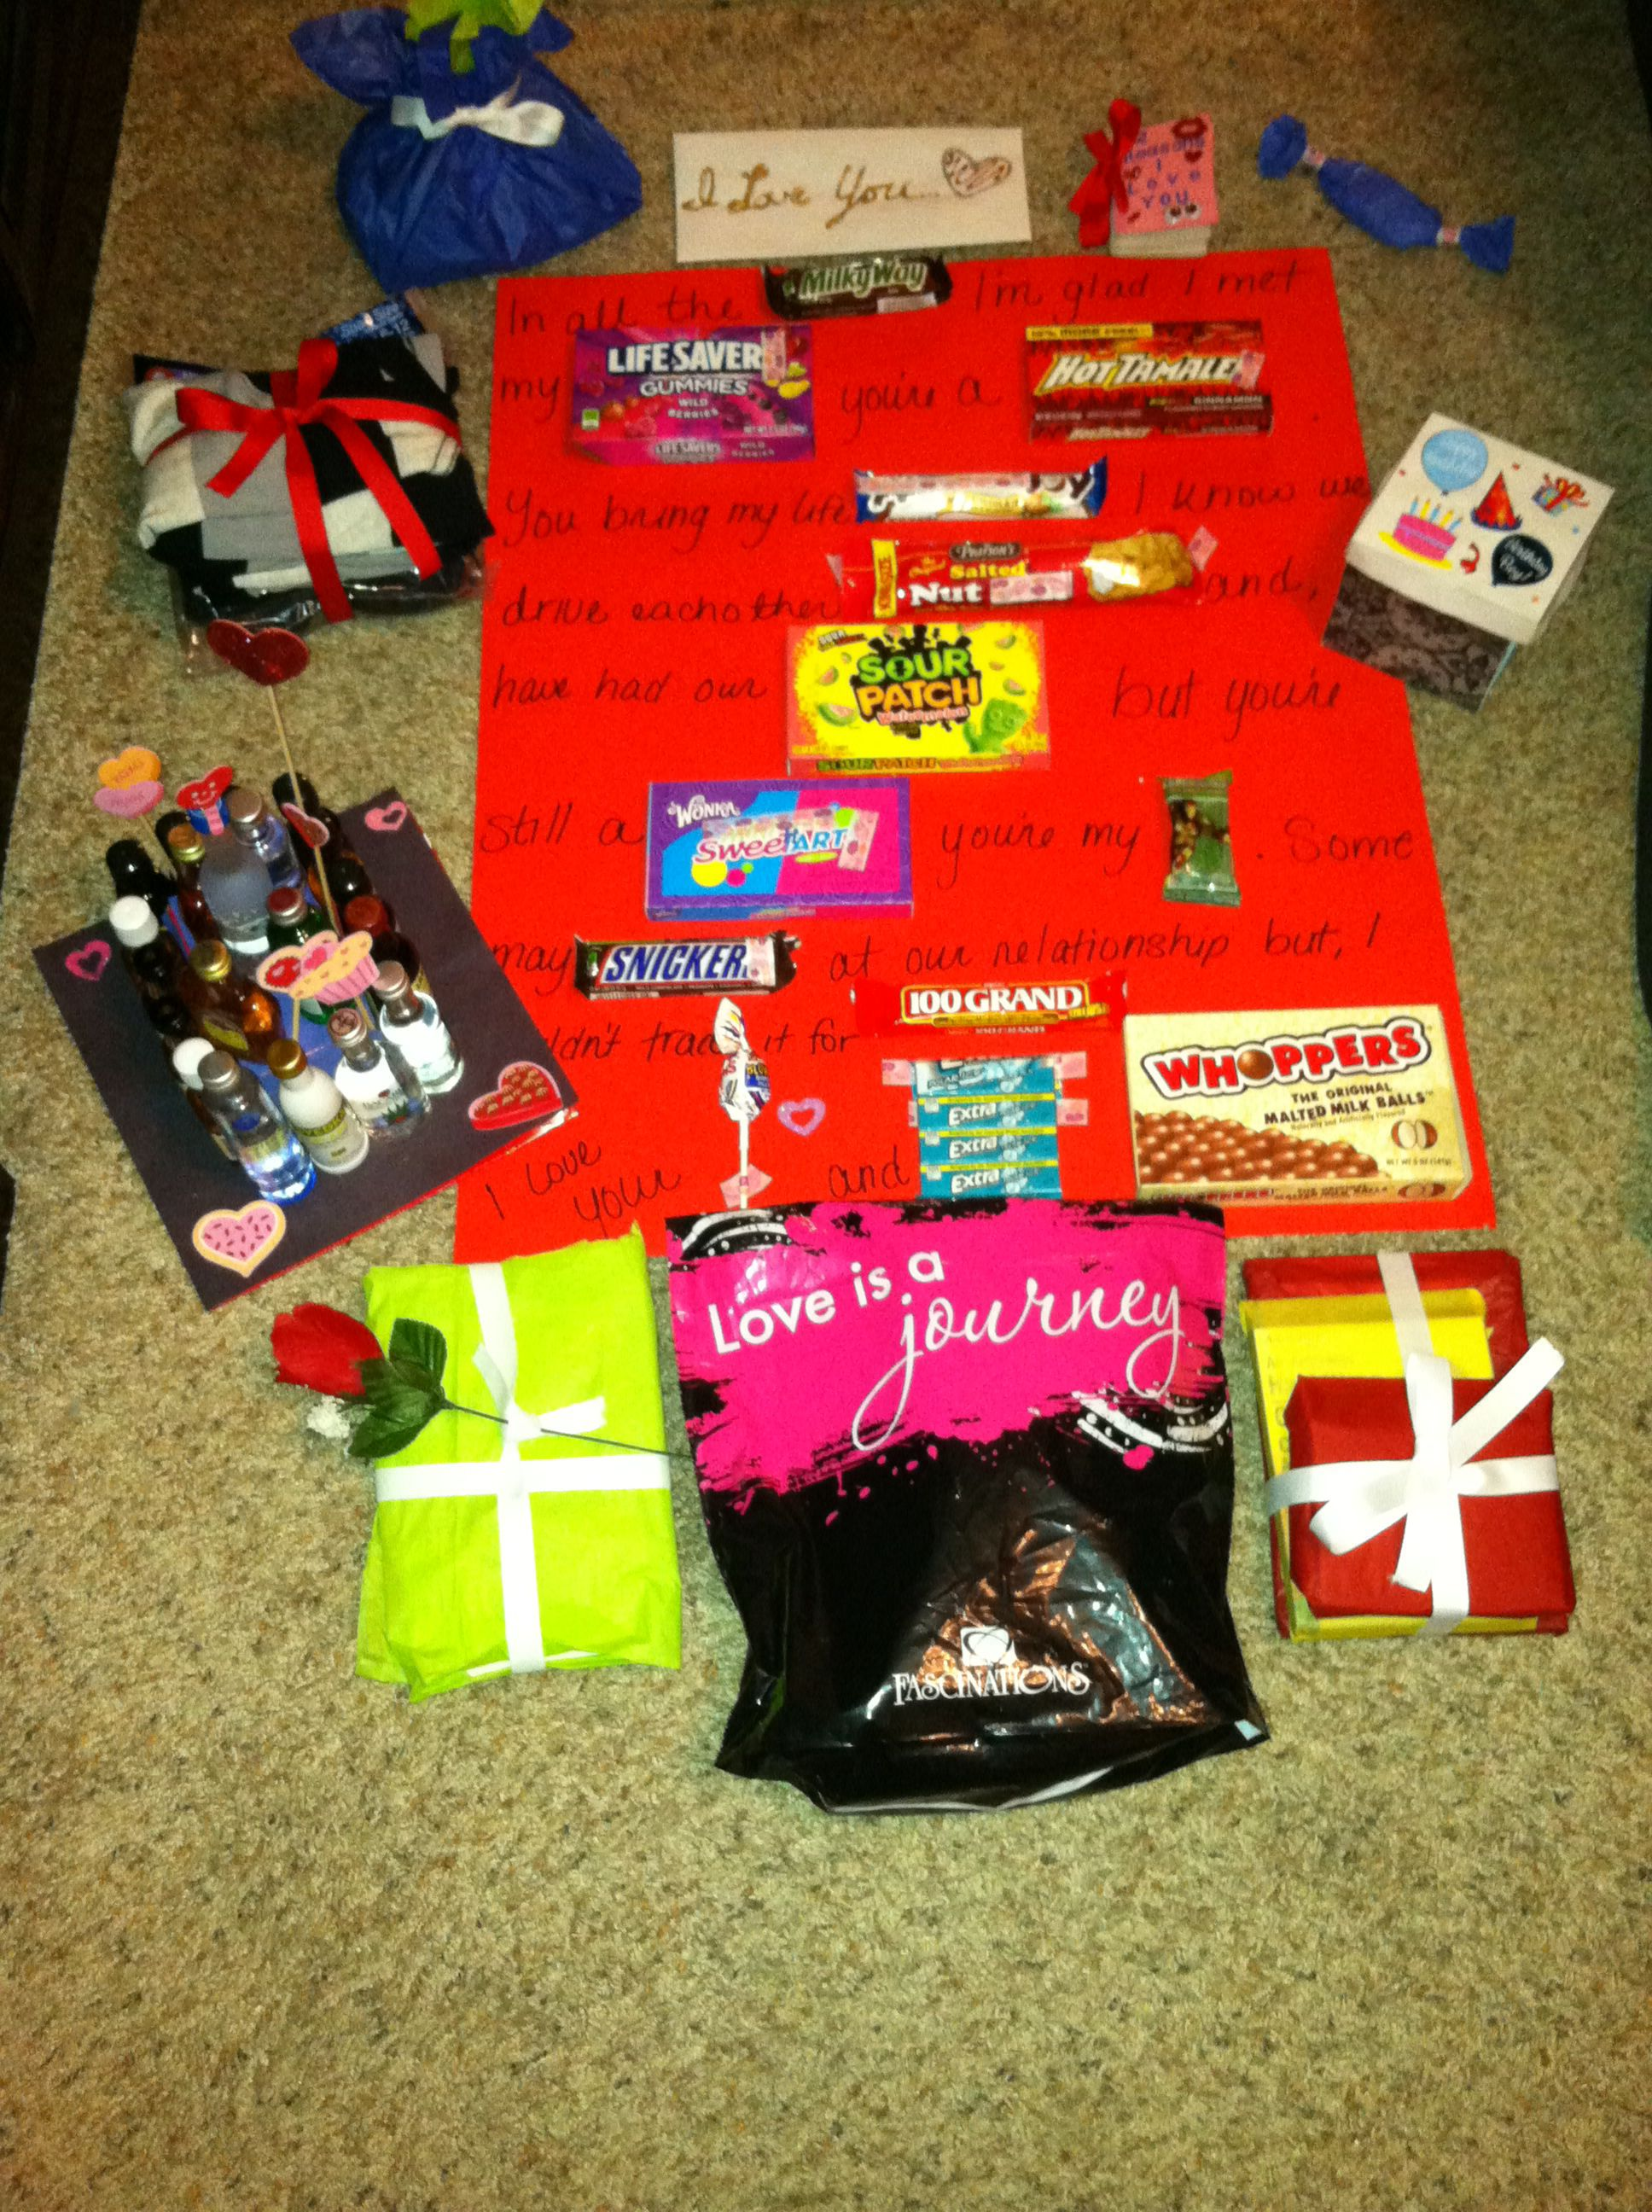 22 Gifts For My Boyfriends 22nd Birthday | *S2* Things To Do For ...